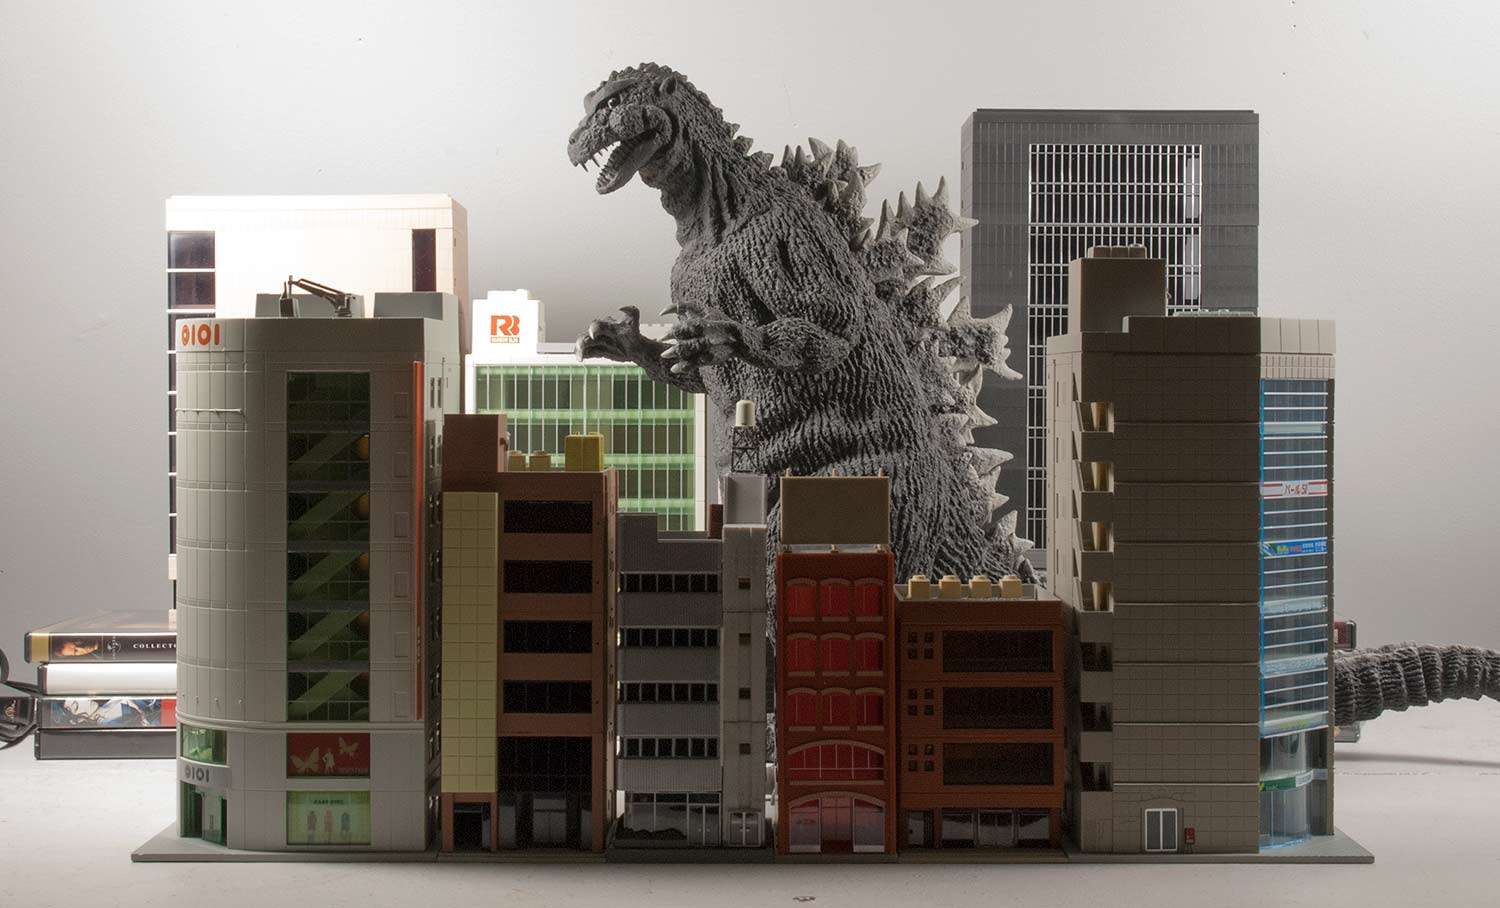 X plus 30cm series godzilla 1954 stomping through a set of n scale buildings